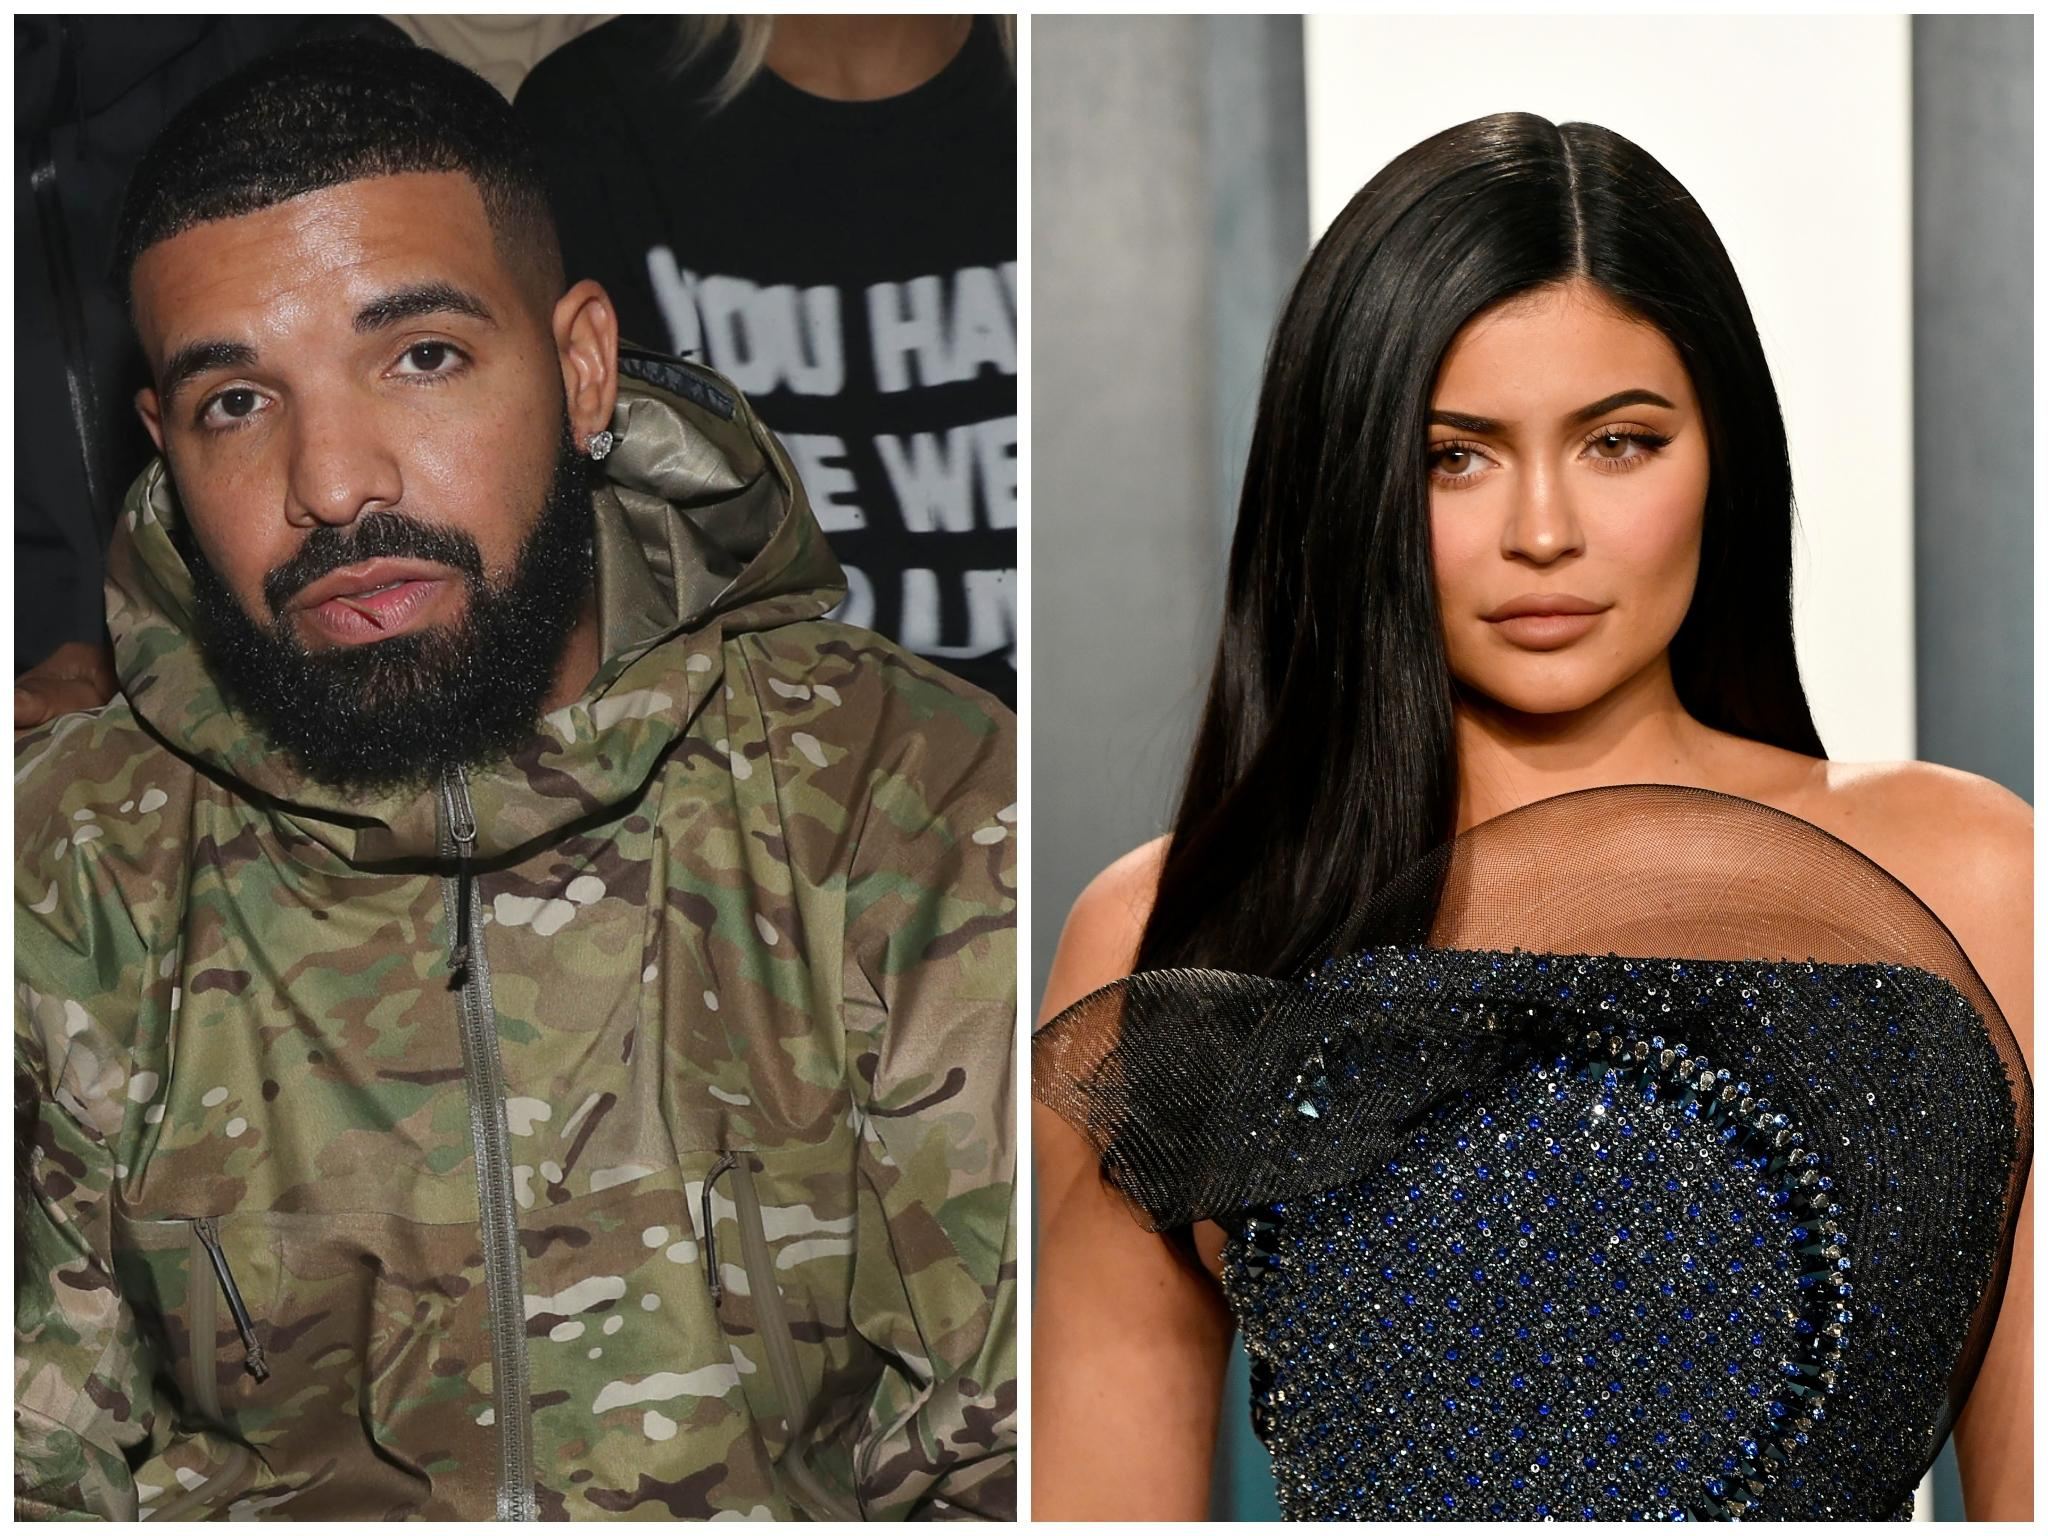 Drake apologies after leaked song calls Kylie Jenner a 'side piece'